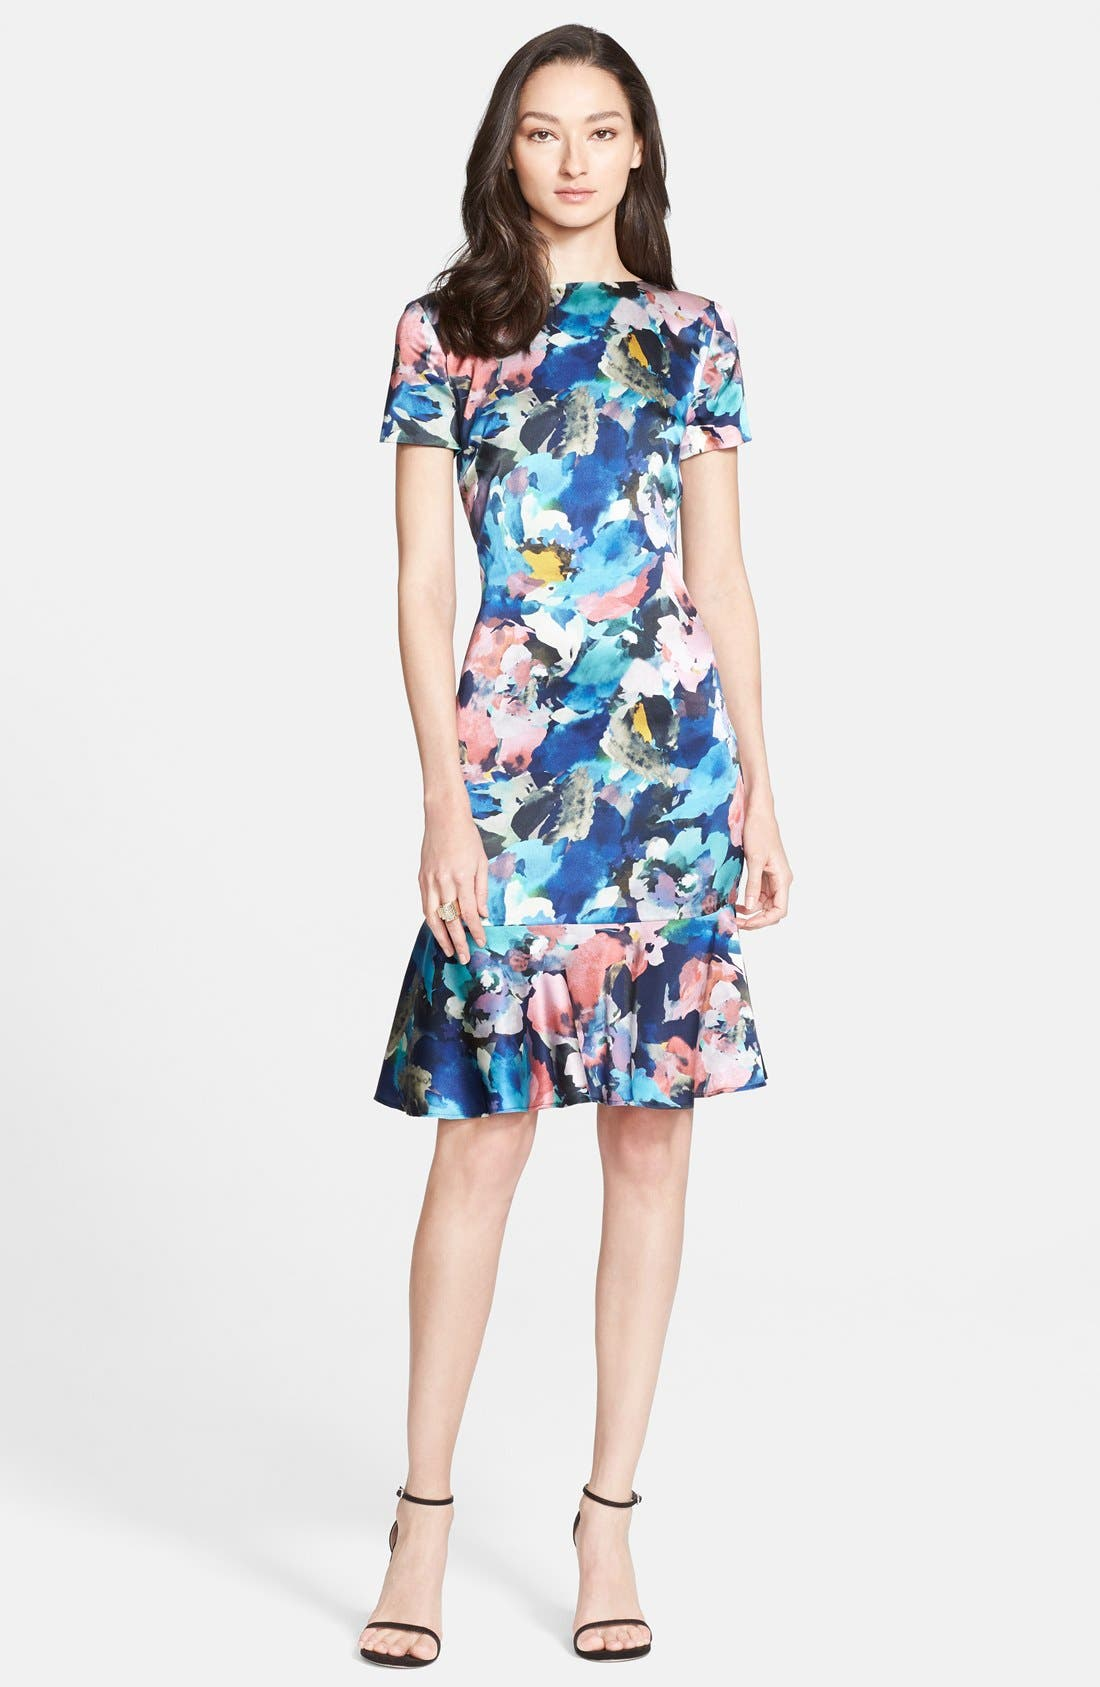 ST. JOHN COLLECTION Collage Floral Print Stretch Silk Charmeuse Dress, Main, color, 020